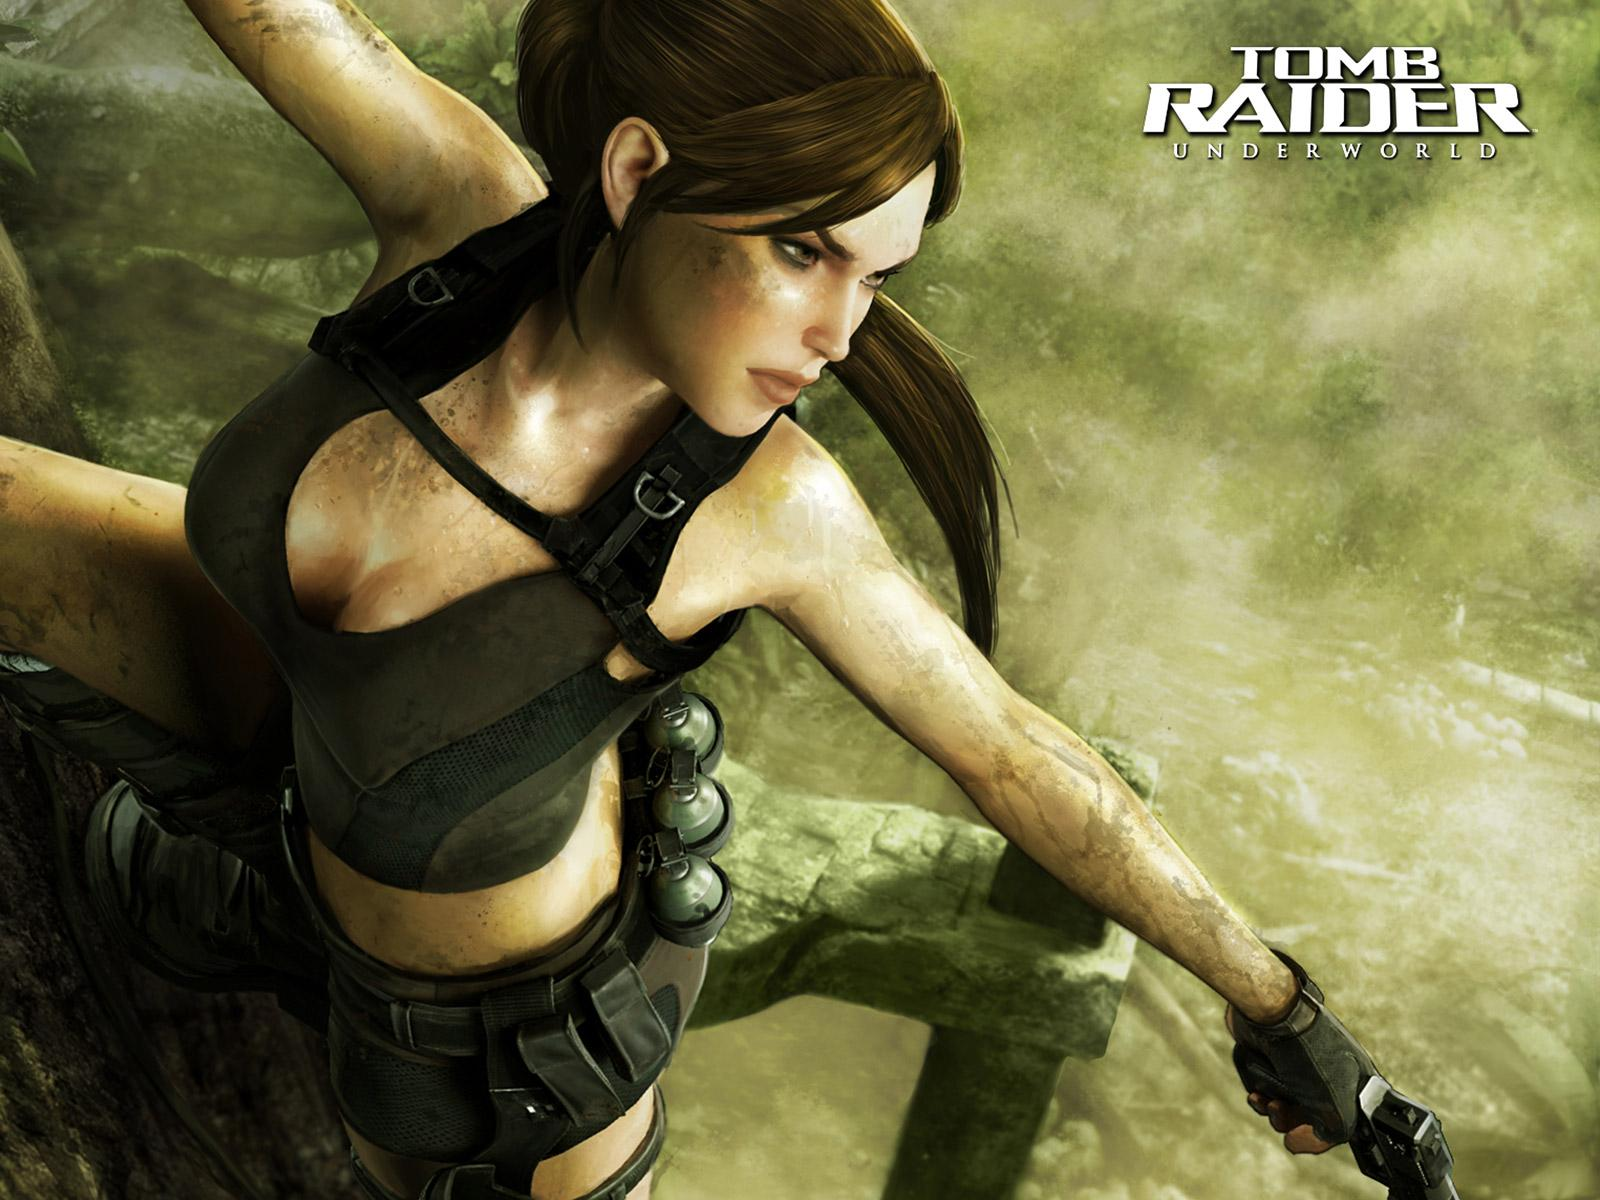 tomb raider underworld wallpapers - Tomb Raider Underworld Wallpaper